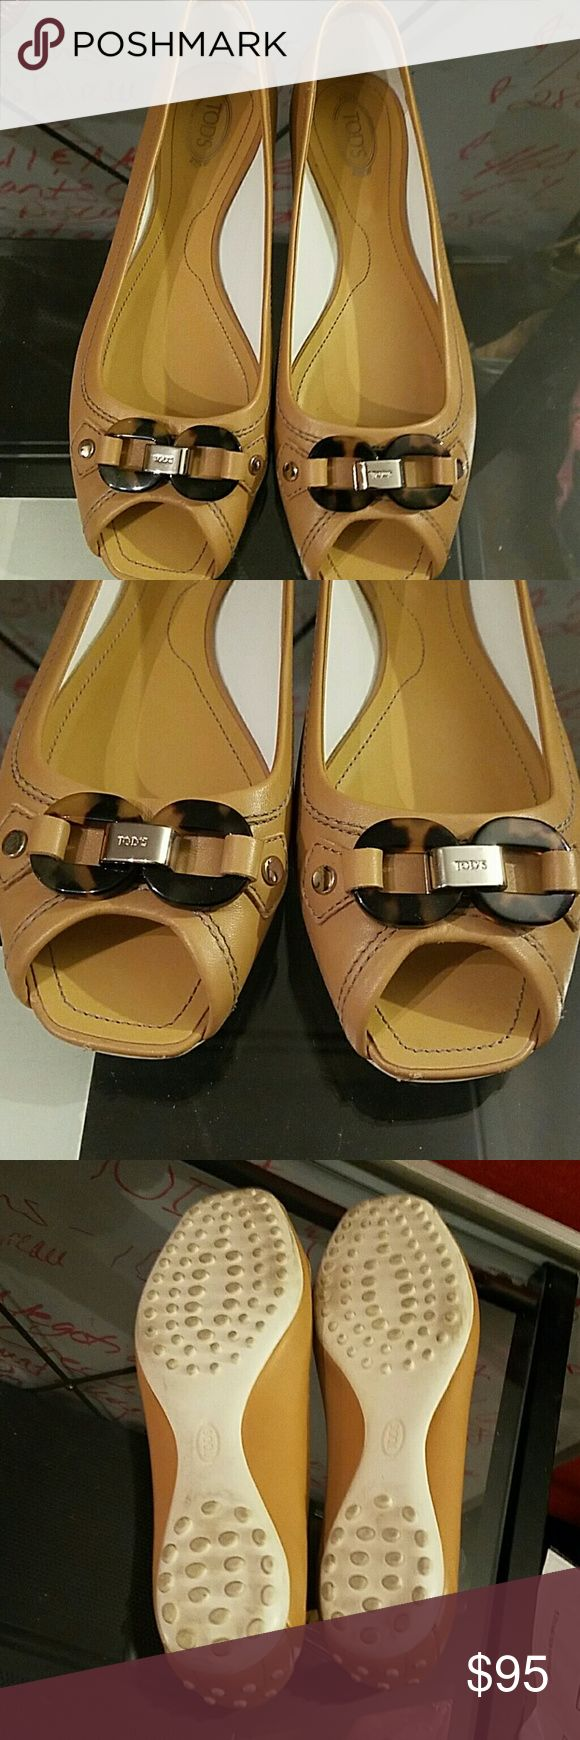 Tod's Peep Toe Flats Tod's like new peep toe with tortoise shell embellishment at toe. Excellent Condition Tod's Shoes